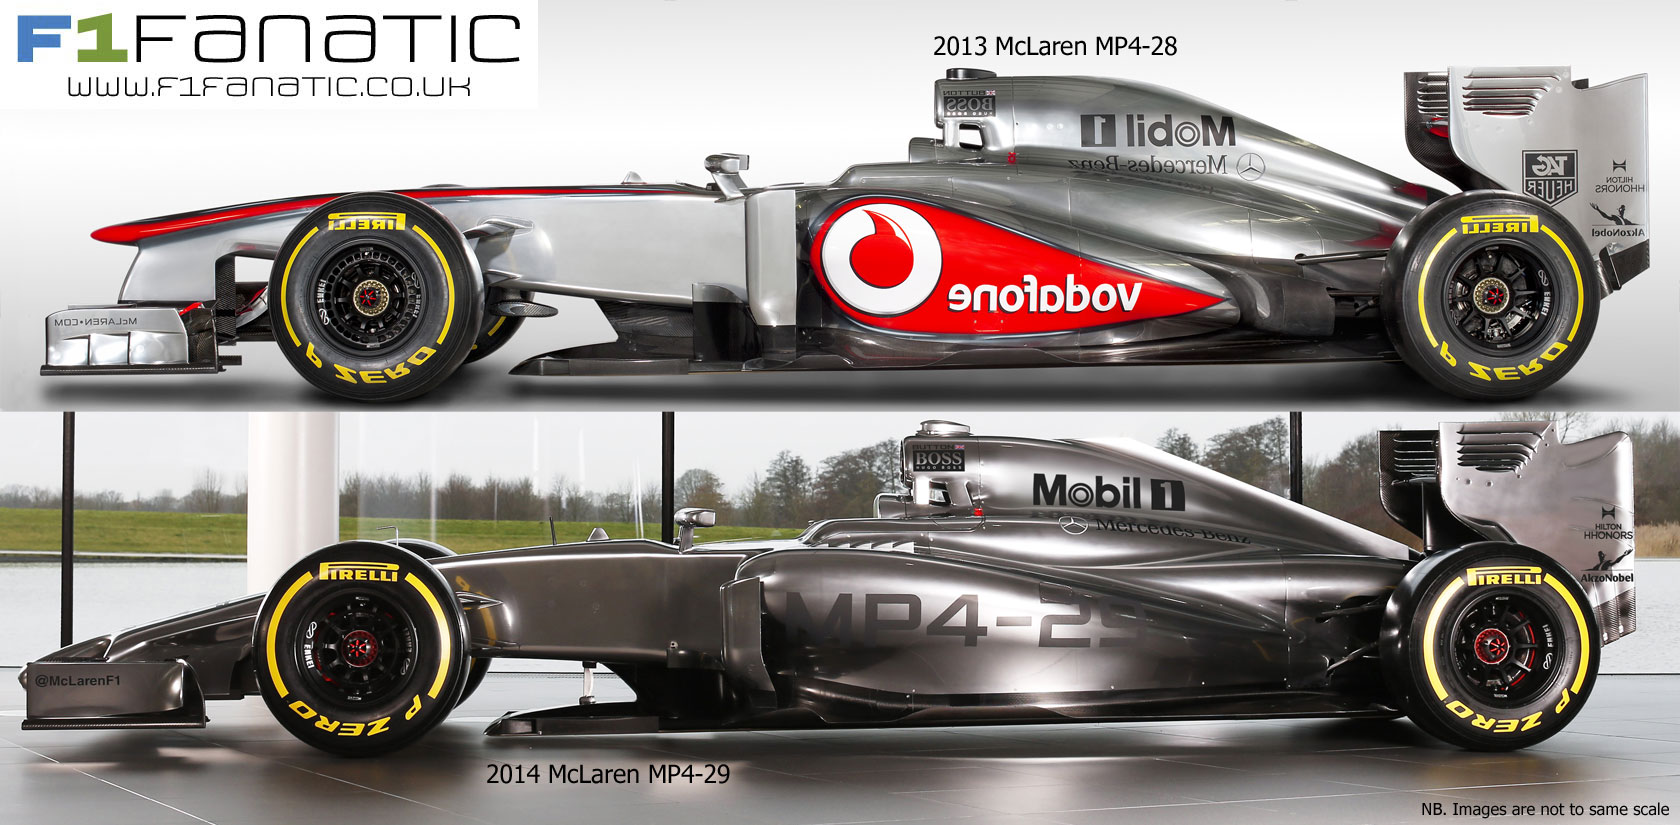 McLaren MP4-28 (pre-launch speculation) - Page 17 - F1technical.net